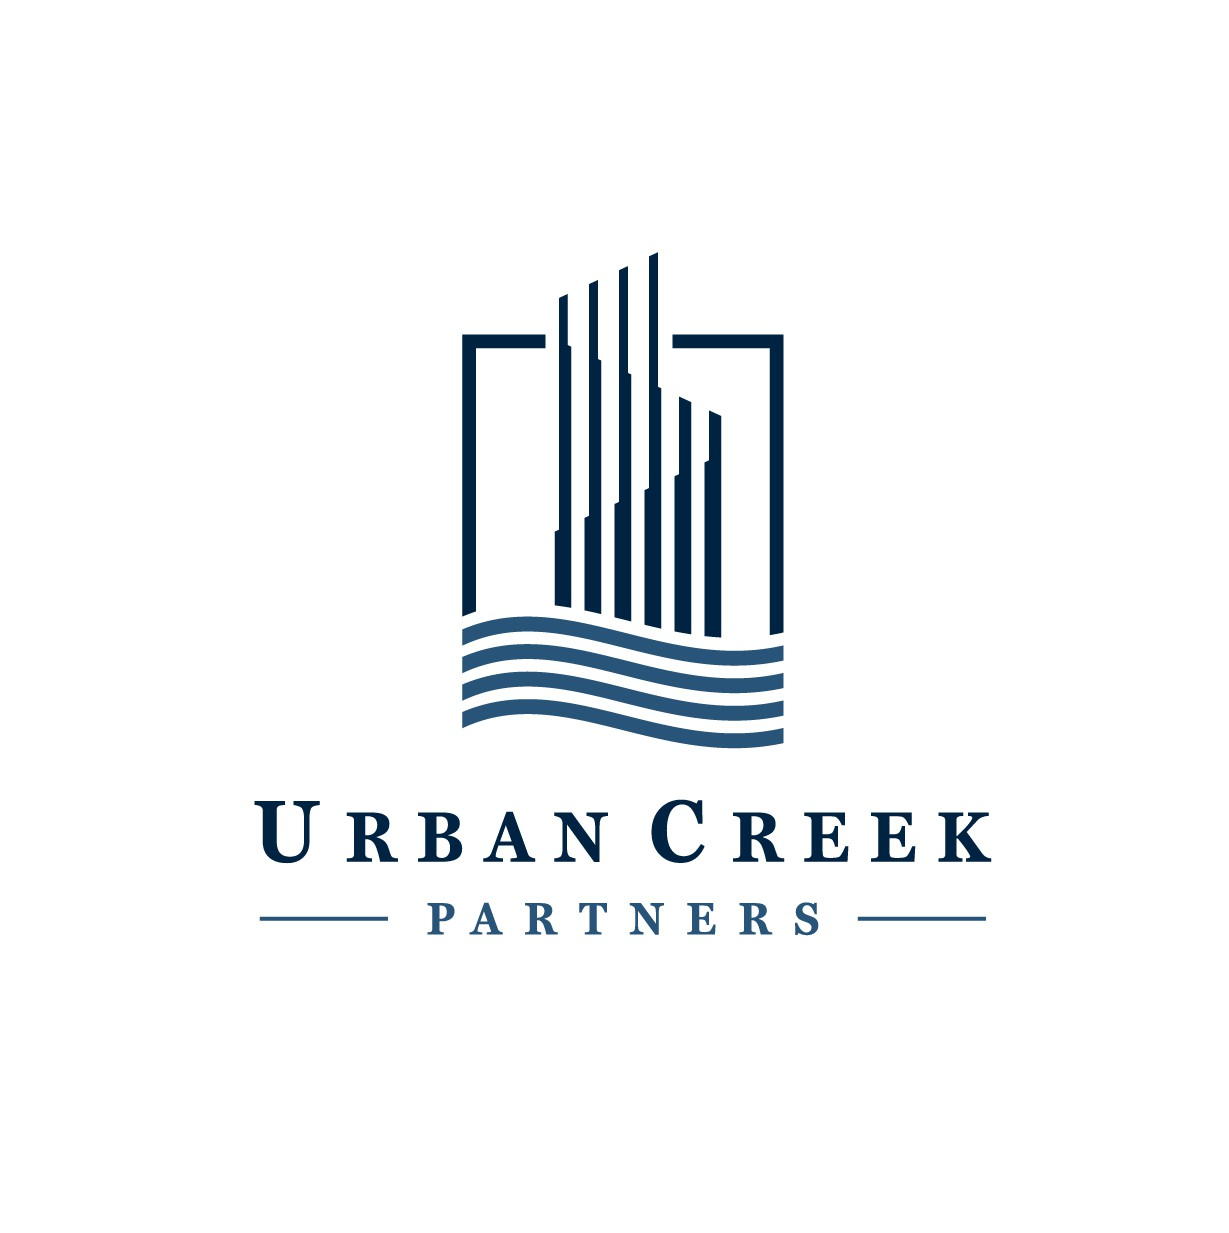 design a creative logo for a professional real estate company focused on the urban core markets